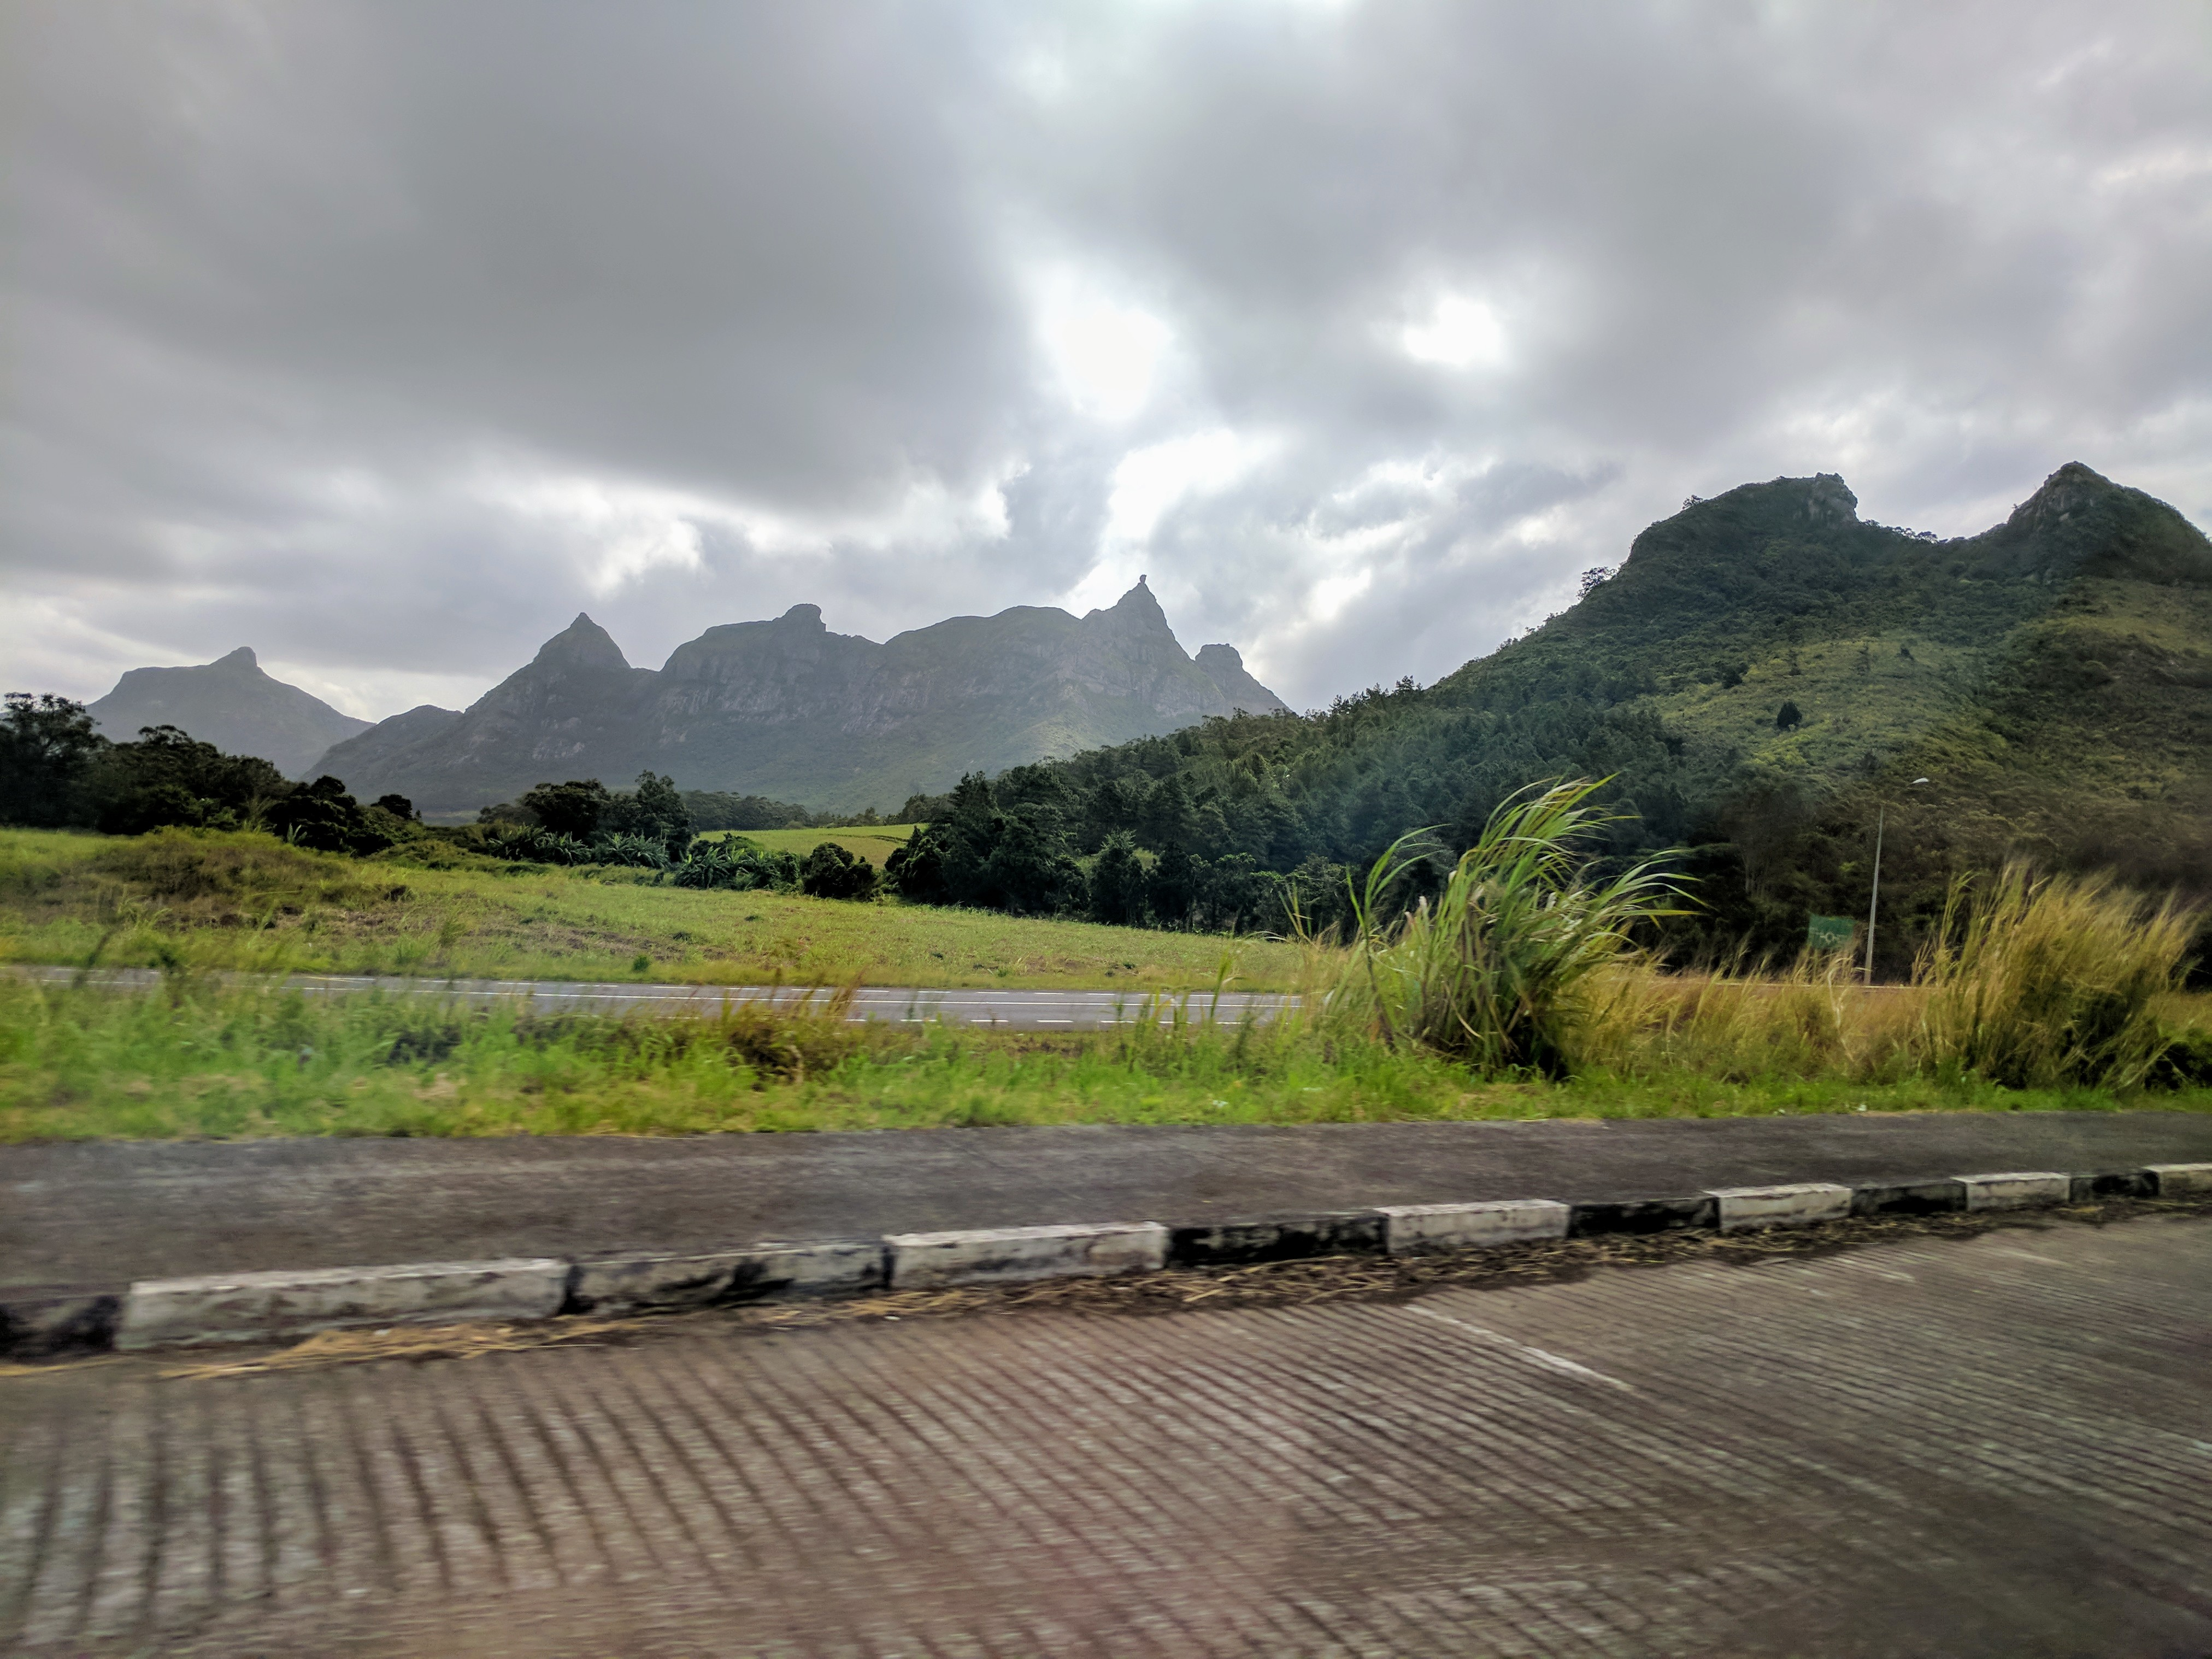 On the highway in Mauritius